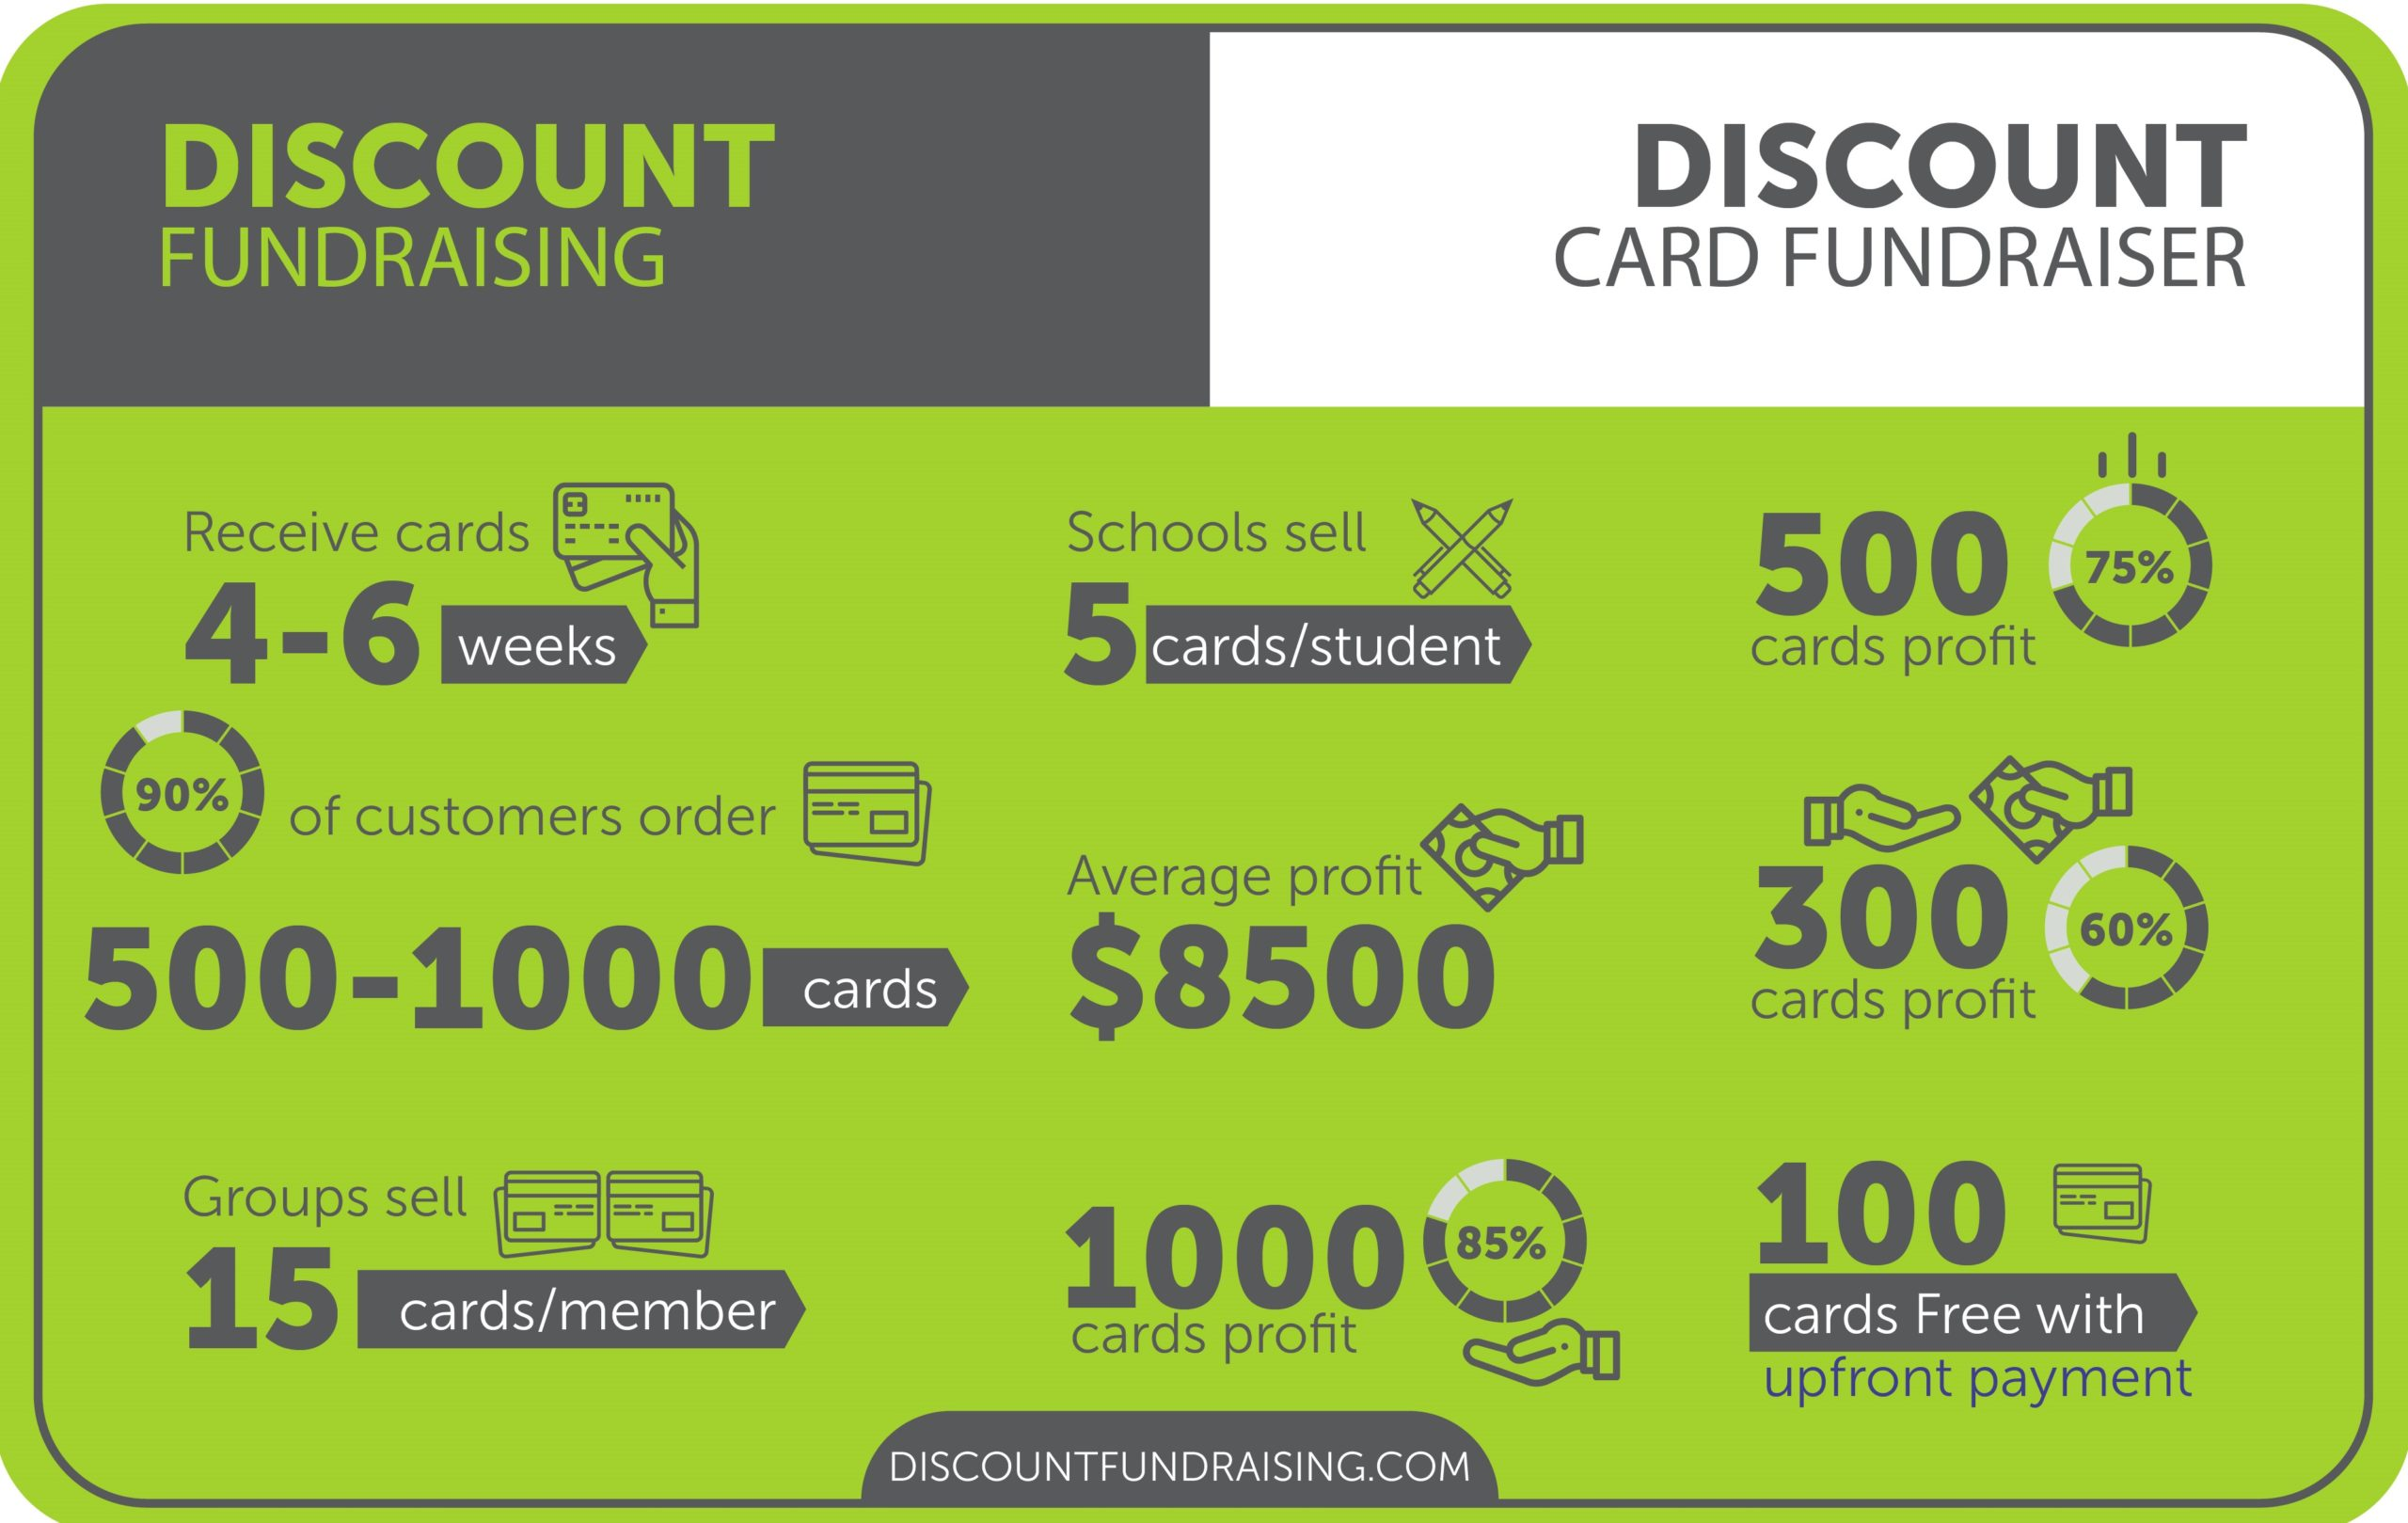 Discount Cards profit